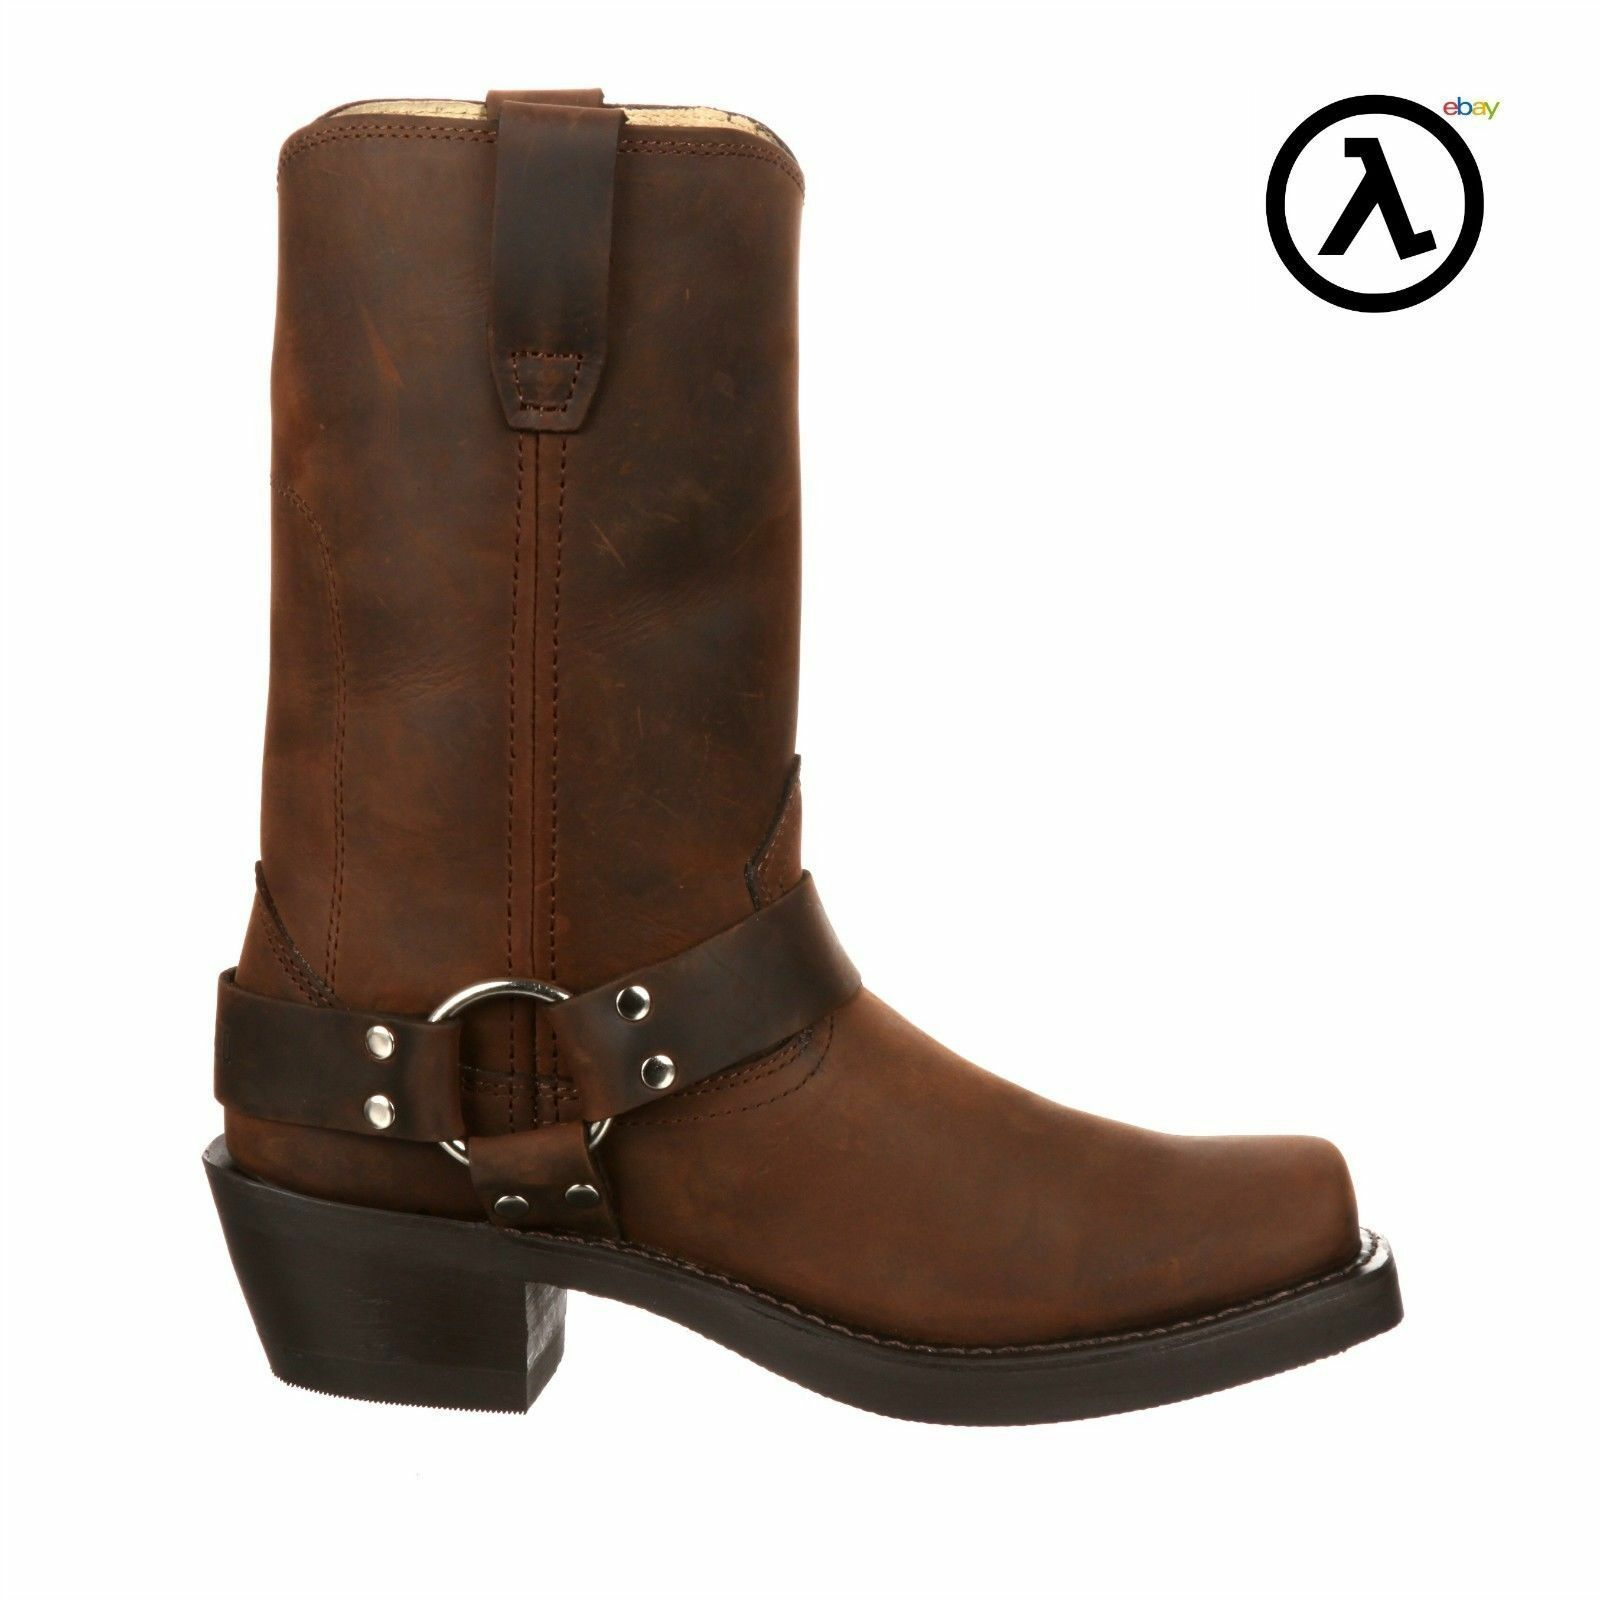 DURANGO WOMEN'S BROWN HARNESS BOOTS RD594 * ALL SIZES - NEW